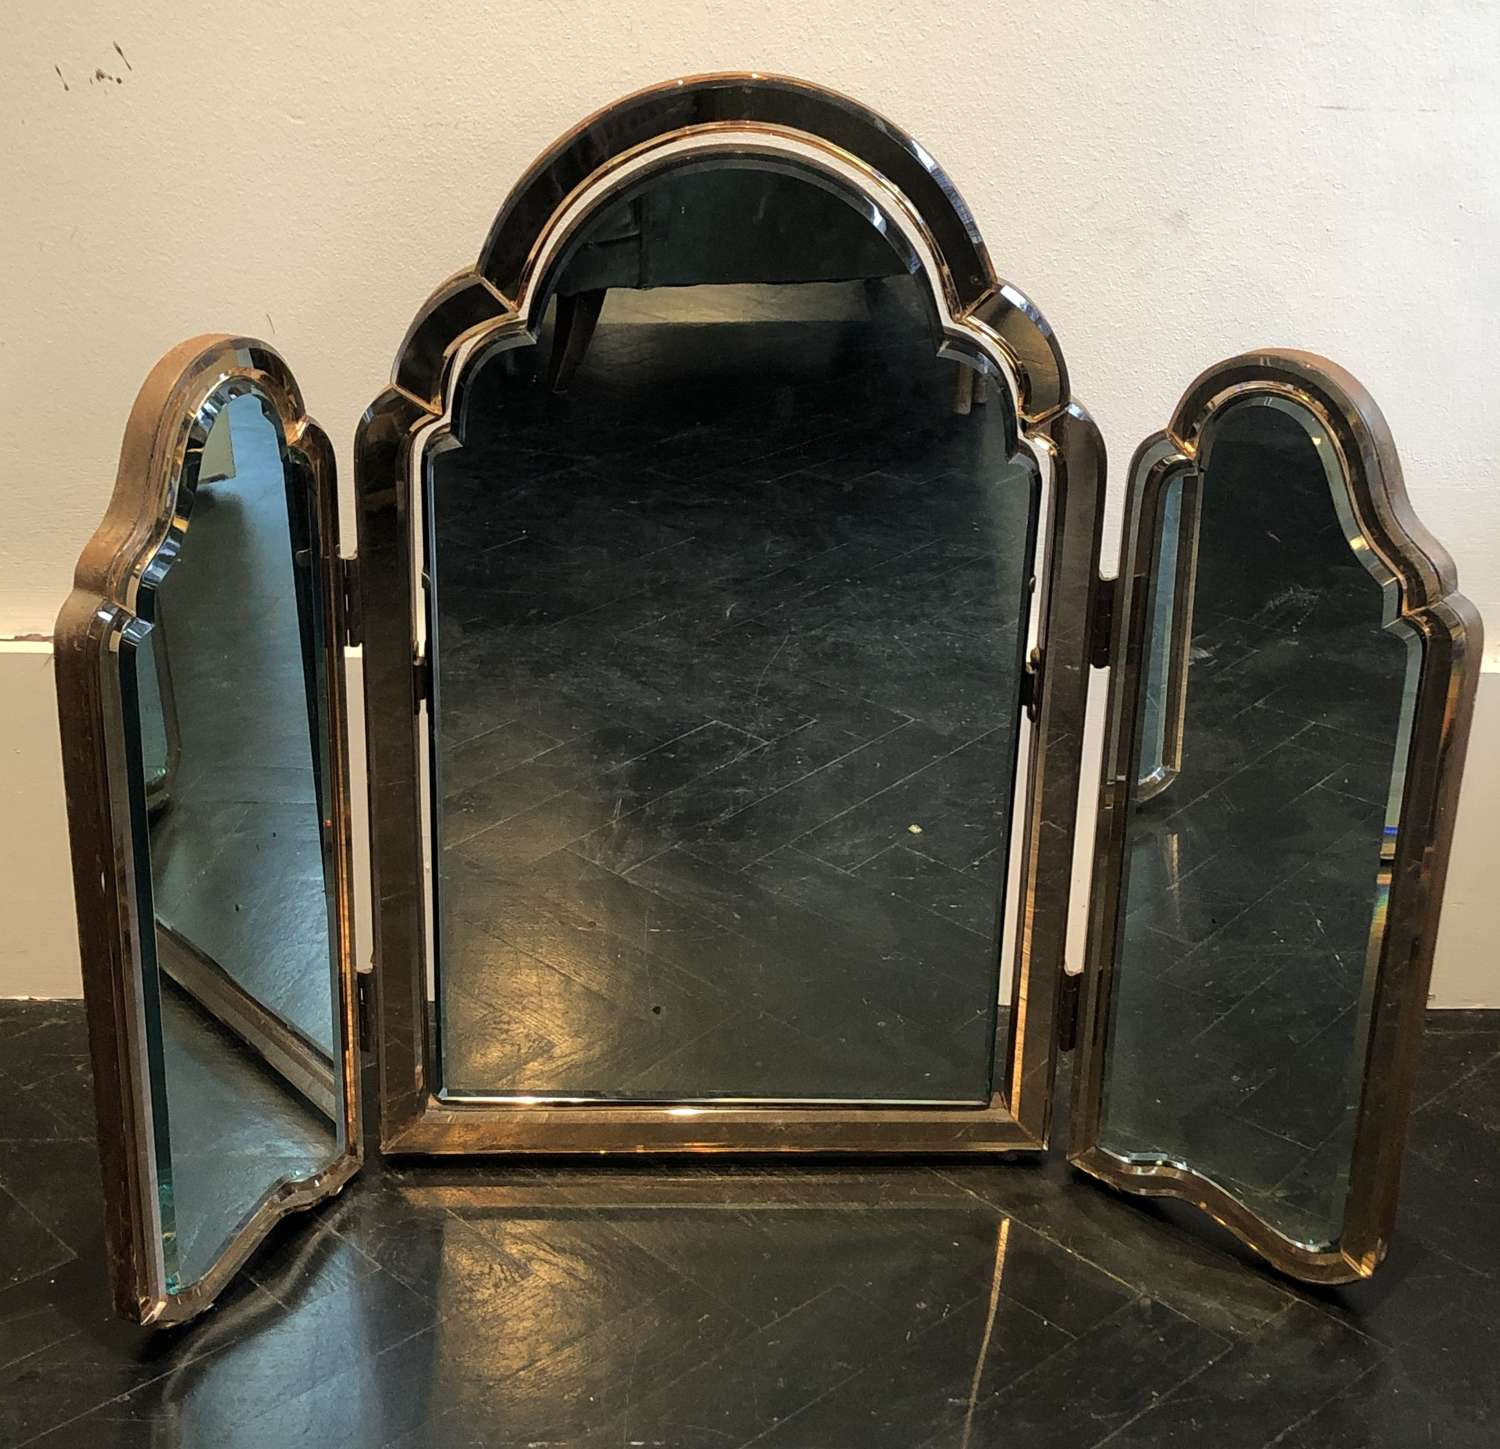 Triptych Mirror - early c20th